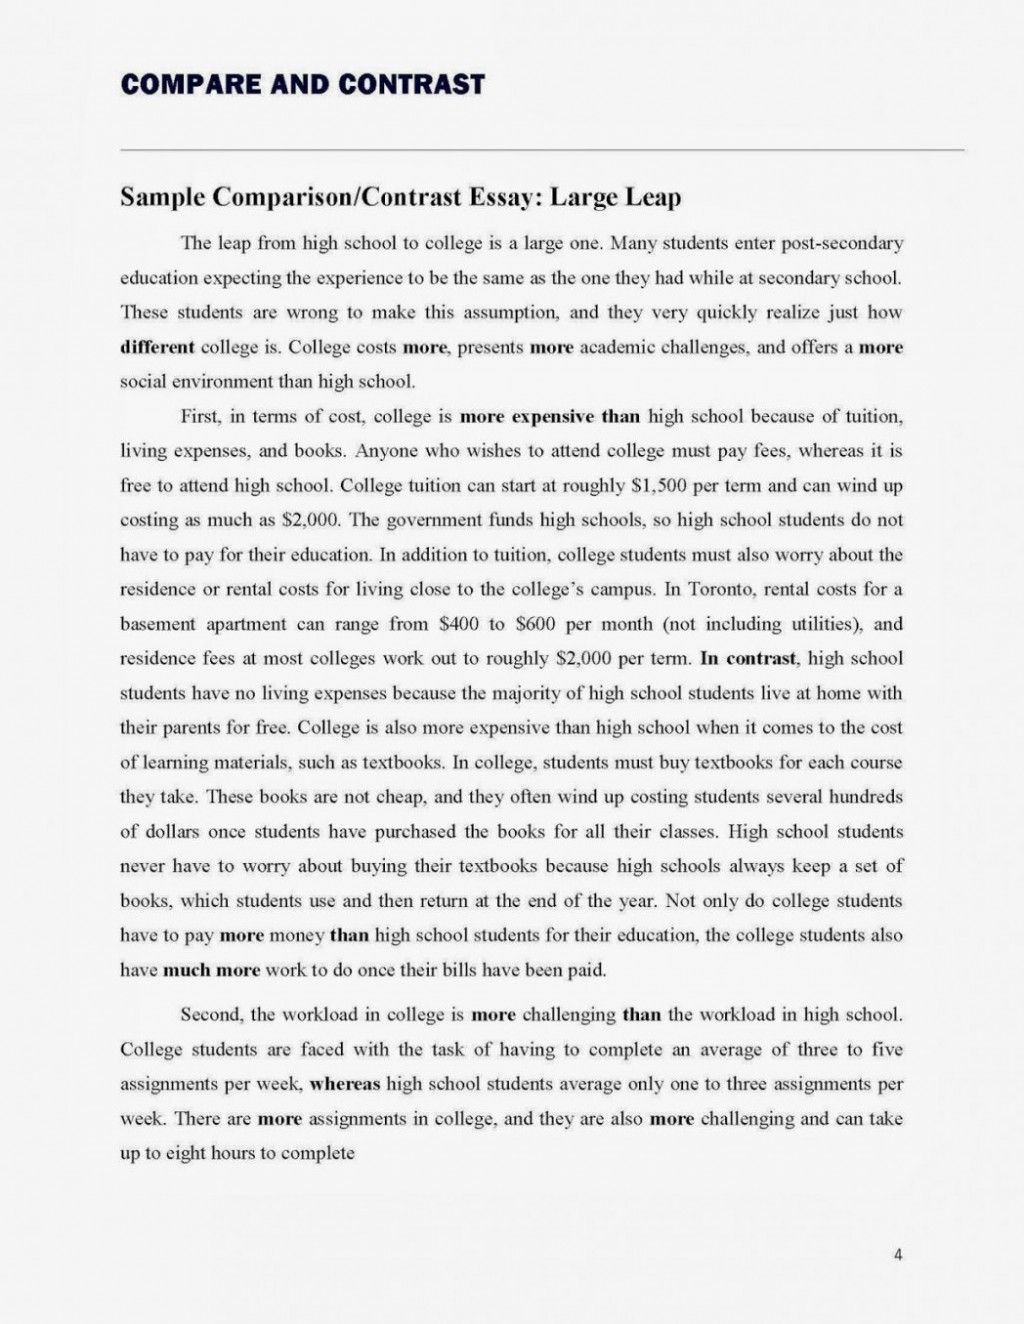 001 Comparisonssay Topic Compare Contrast Prompts Collegenglish T Level Topics Composition Samples For Students Pdfxamples Argumentative Persuasive Freshman 1048x1356 Staggering Comparison Essay Esl And Examples Middle School Large